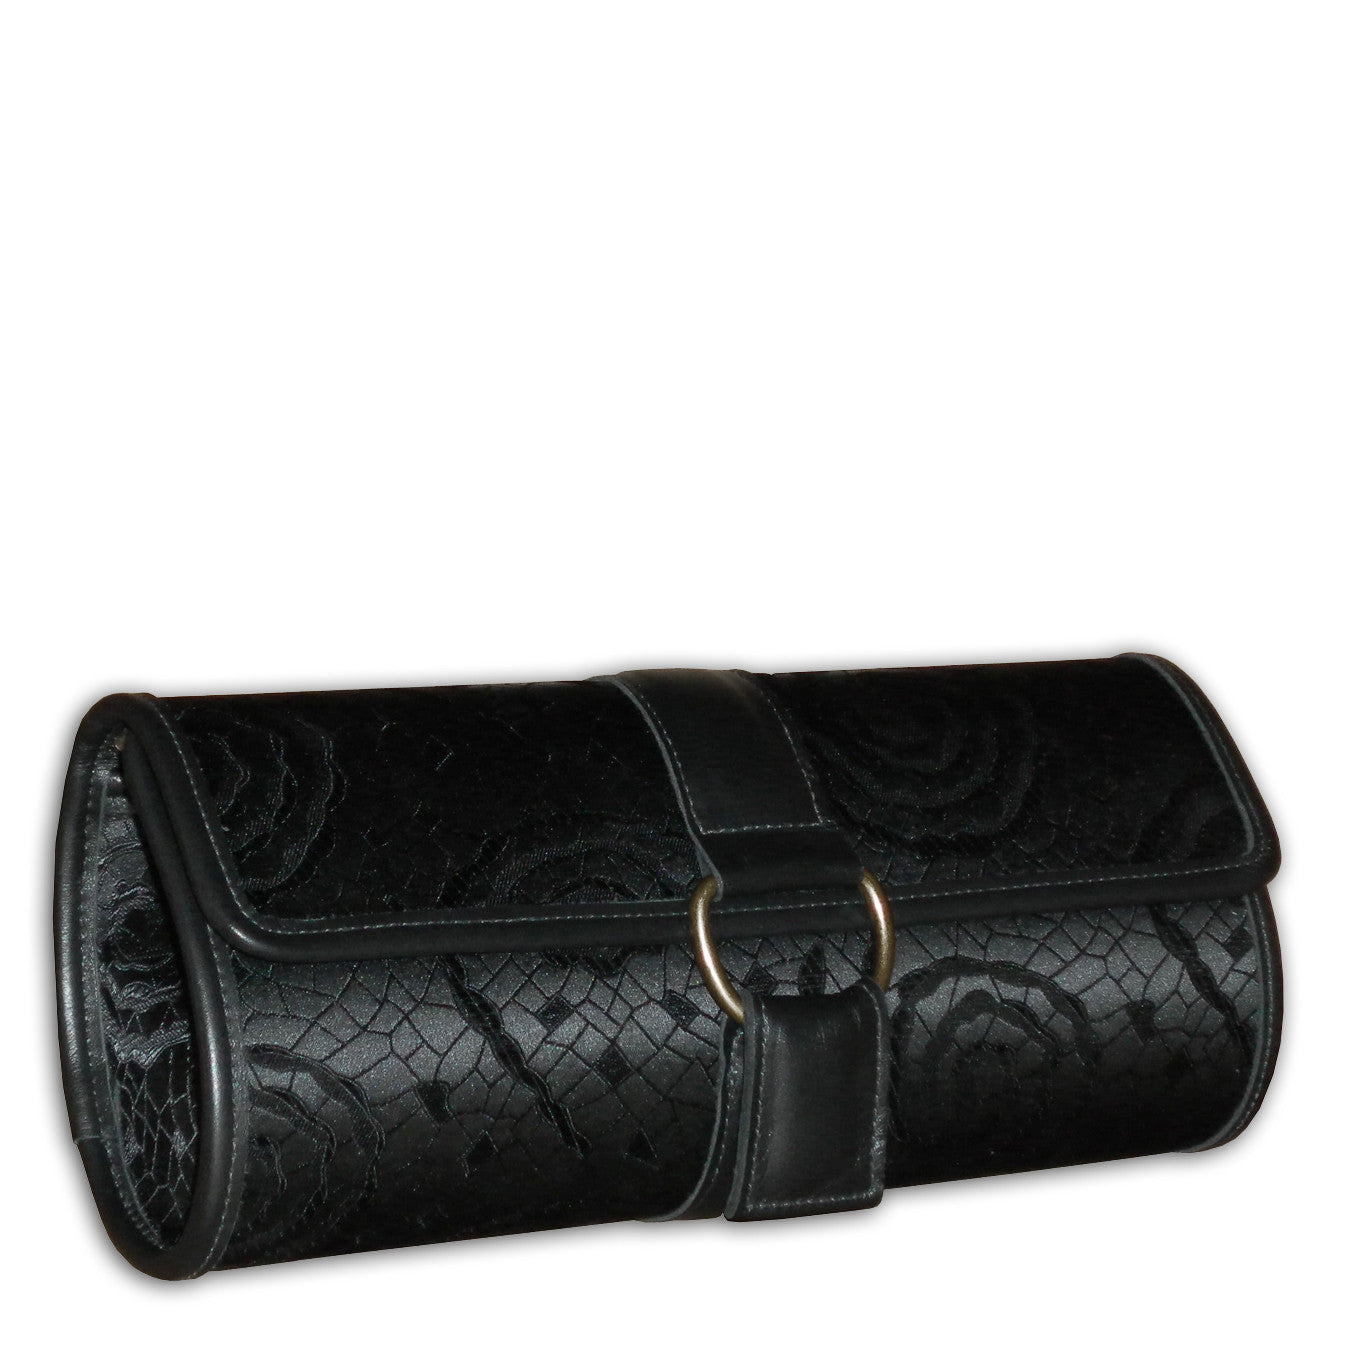 Janey clutch - Black Swirl